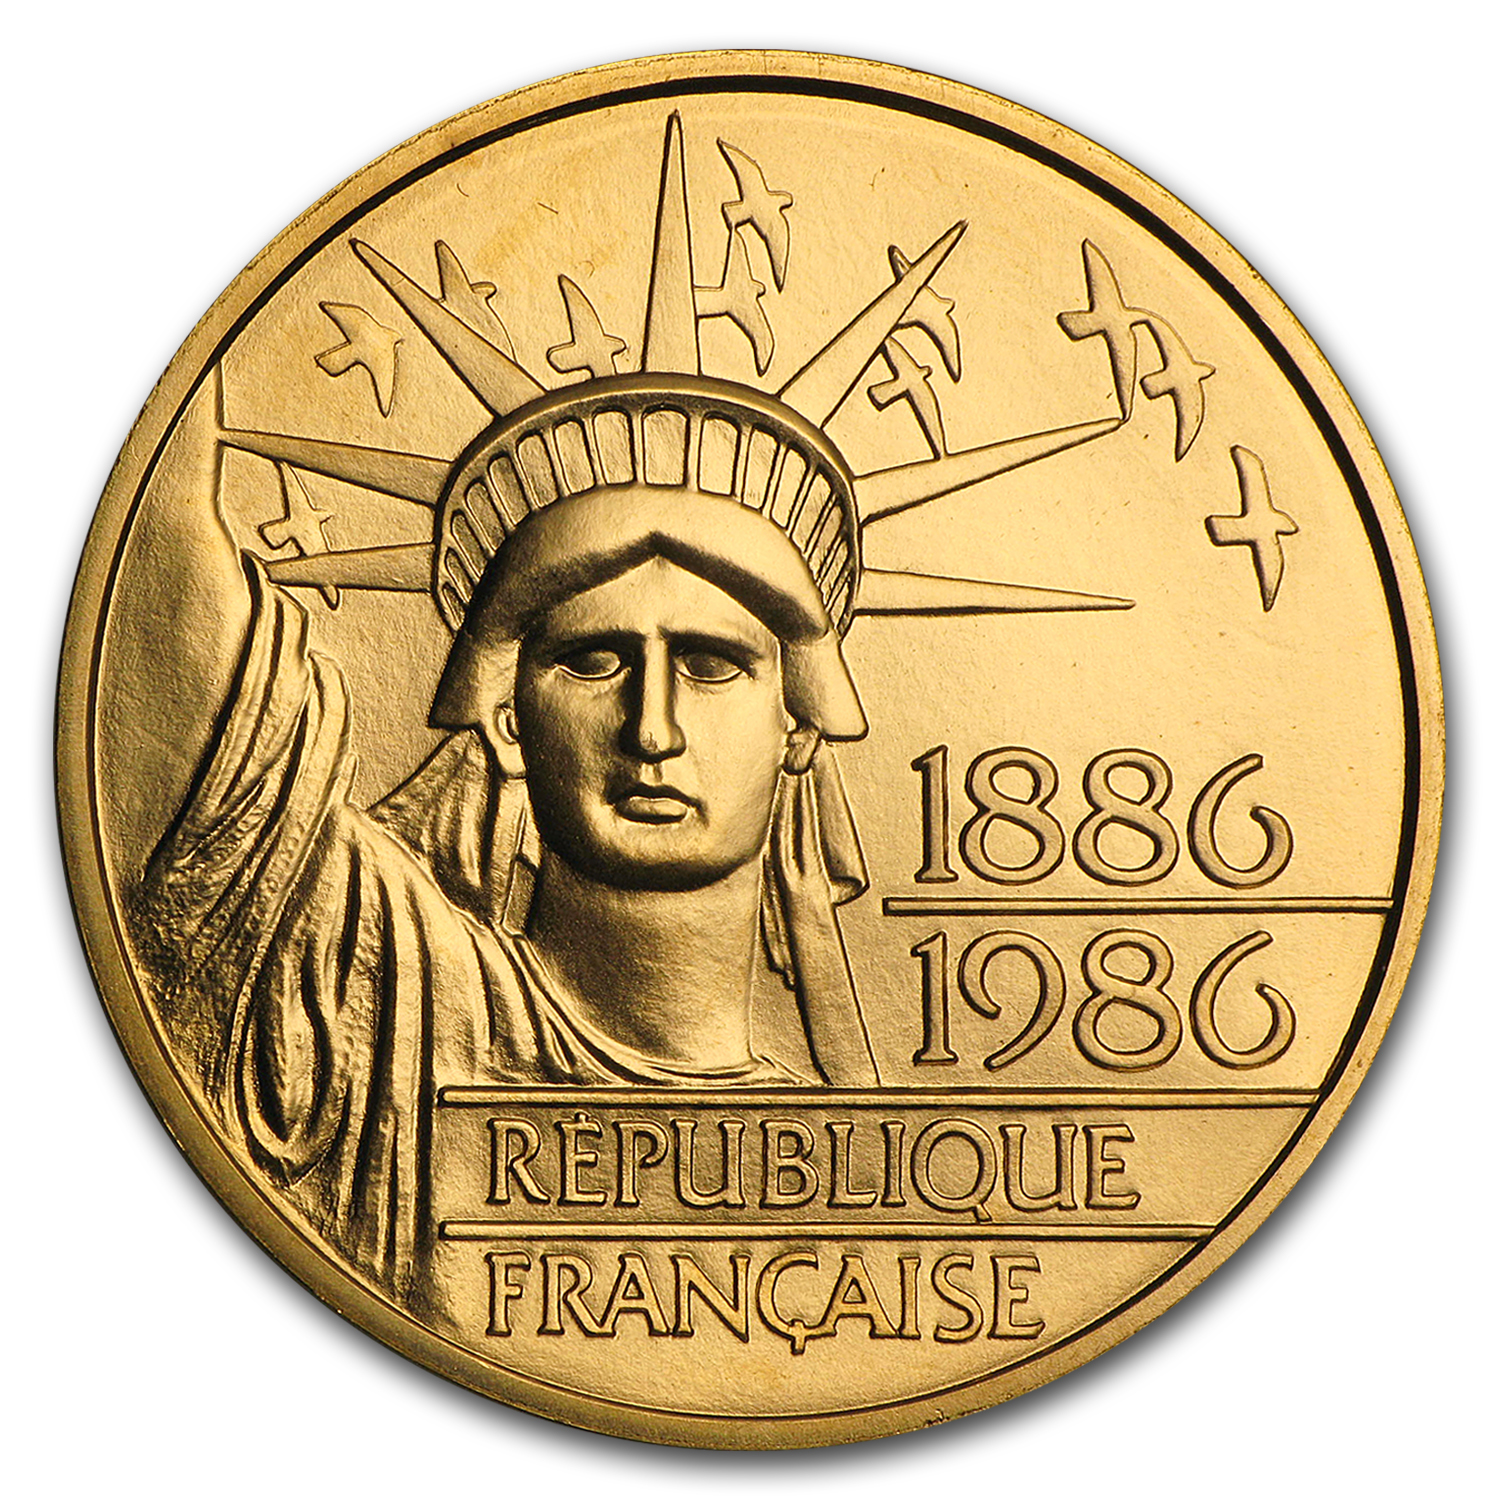 1986 France Gold 100 Francs Statue of Liberty BU